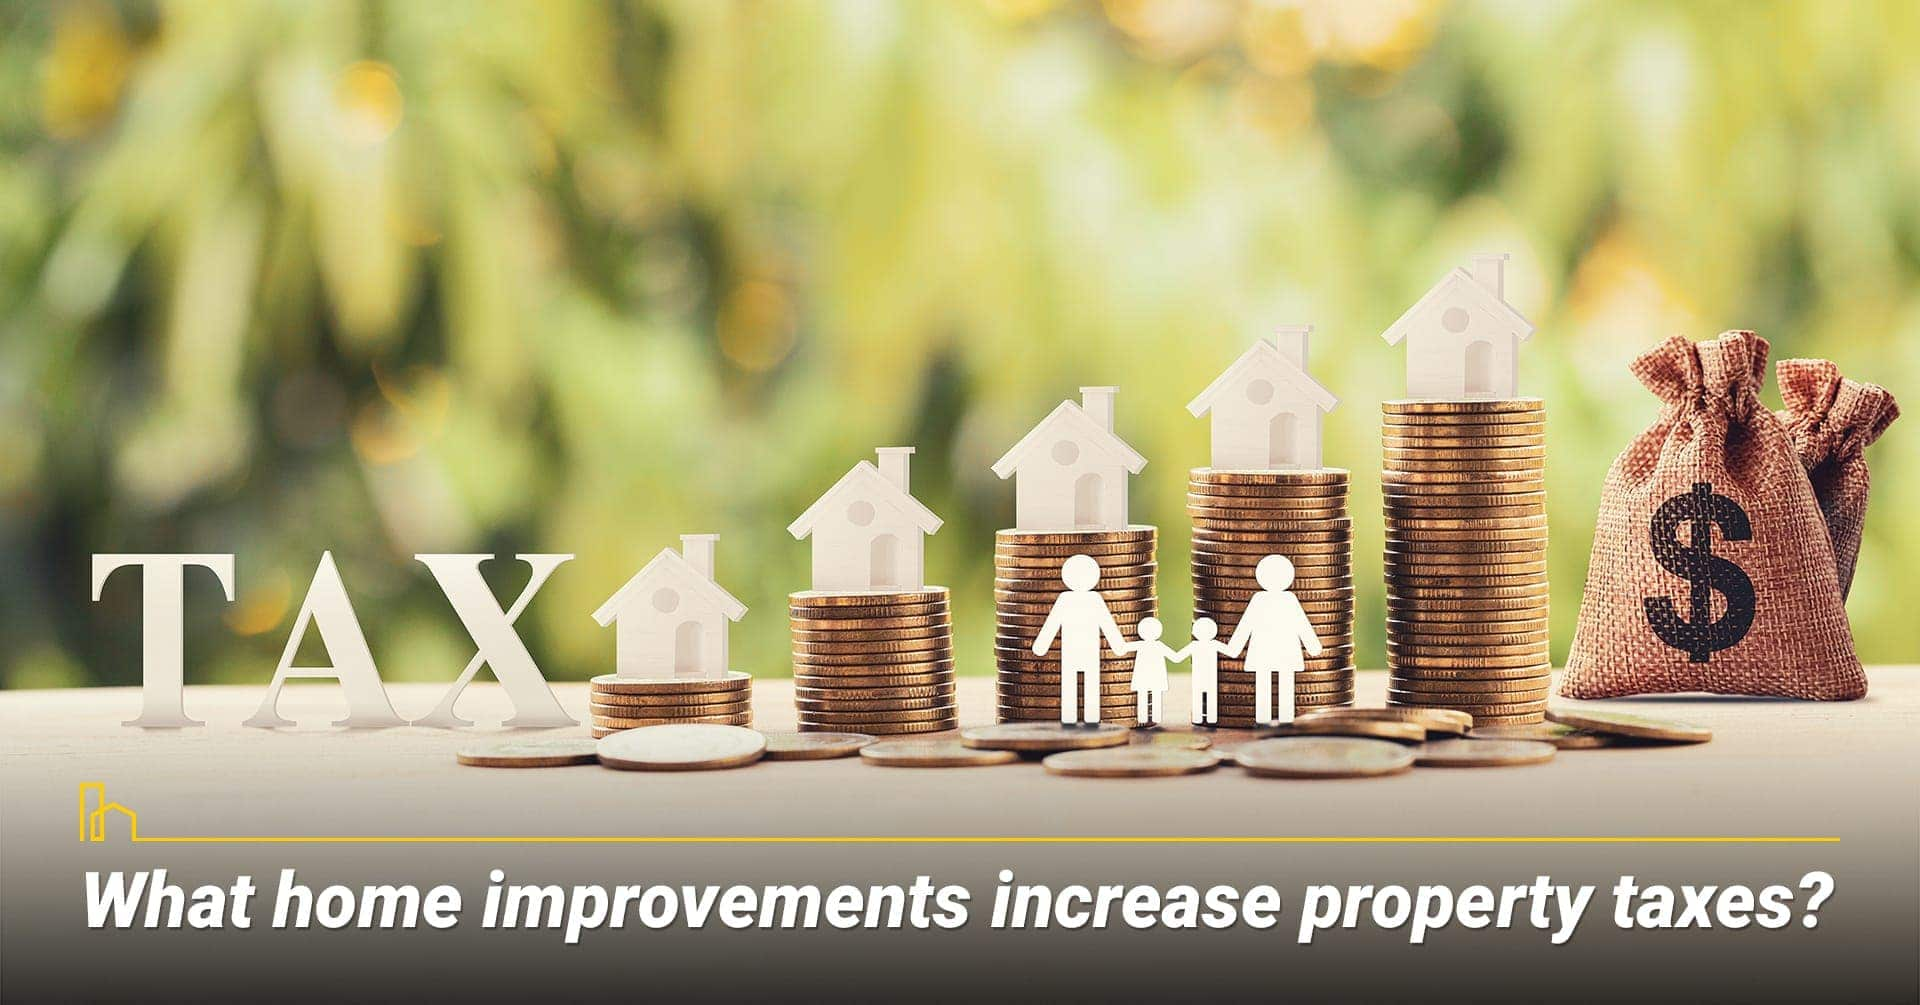 What home improvements increase property taxes? certain home improvement projects increase property taxes